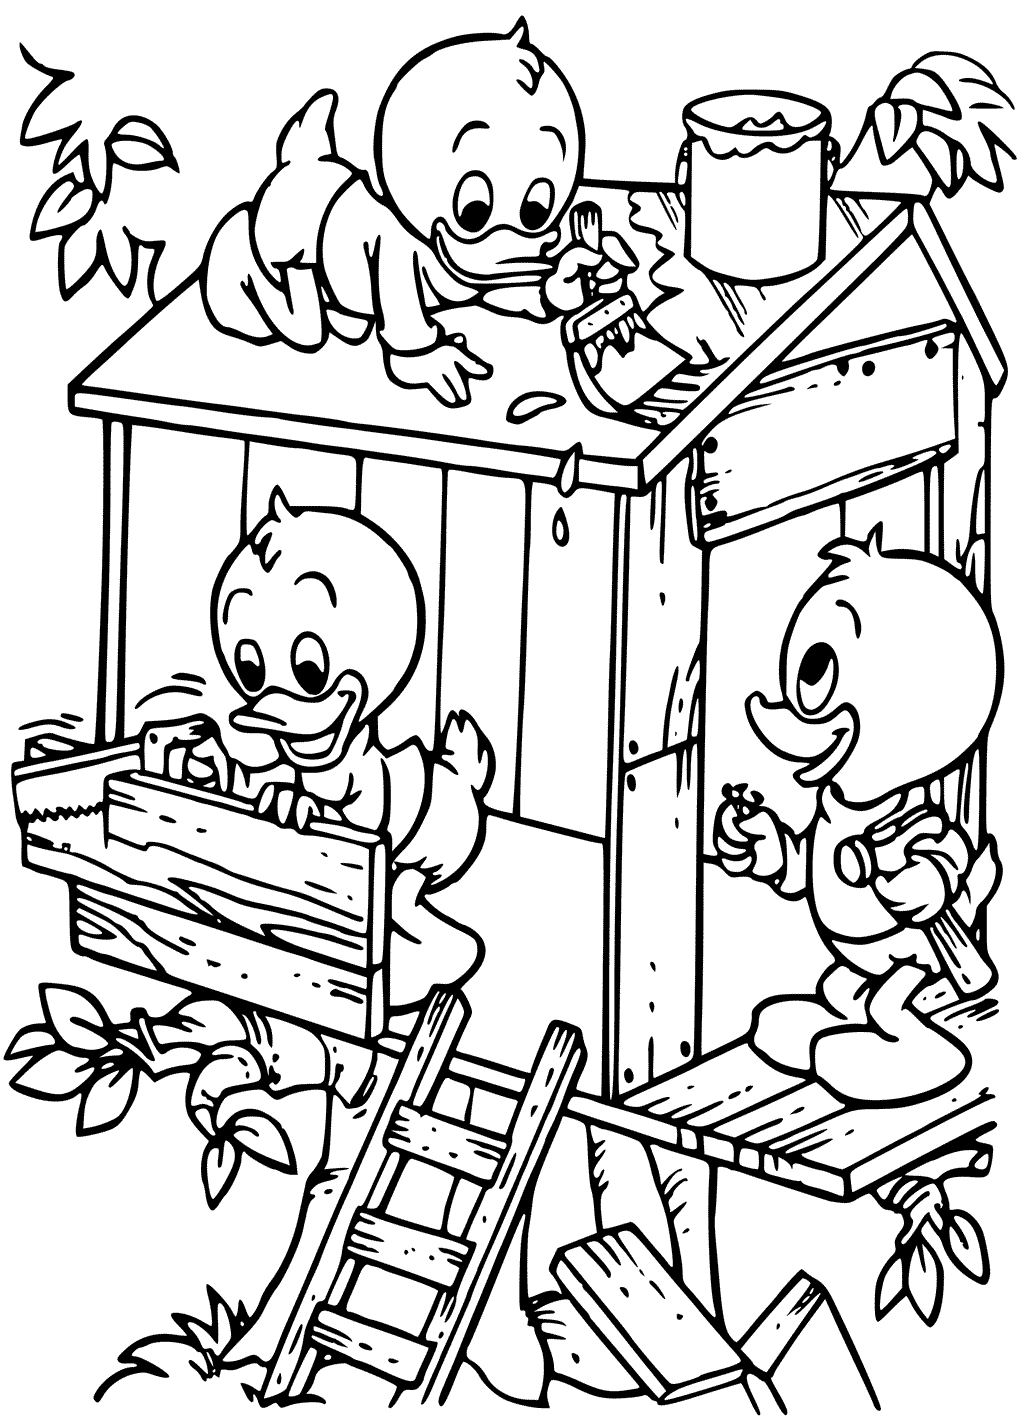 Treehouse Coloring Pages Best Coloring Pages For Kids